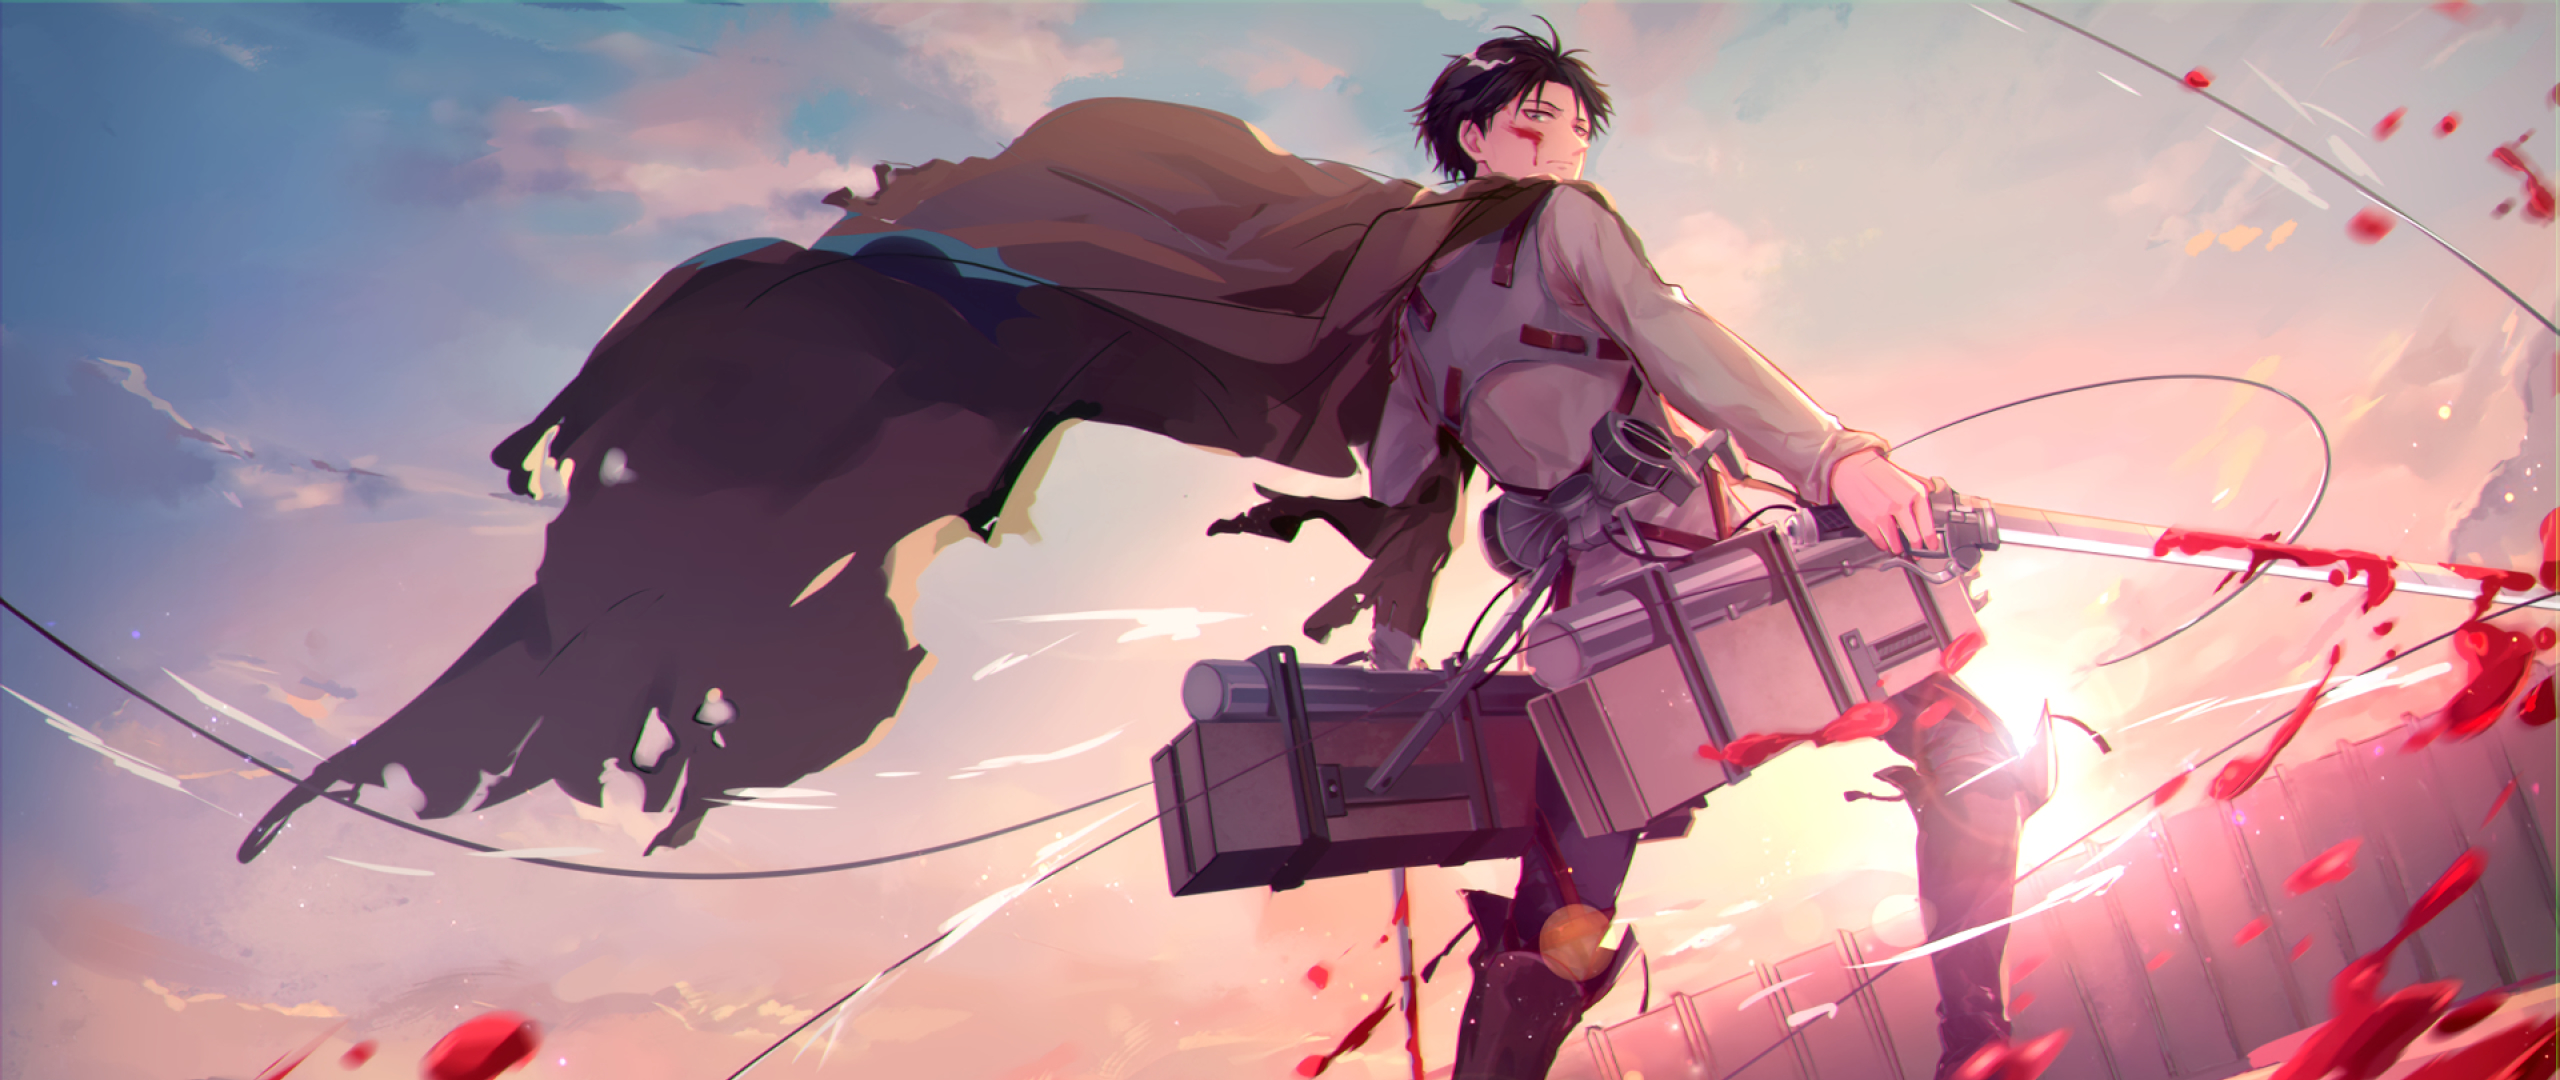 2560x1080 Levi Ackerman 2560x1080 Resolution Wallpaper Hd Anime 4k Wallpapers Images Photos And Background